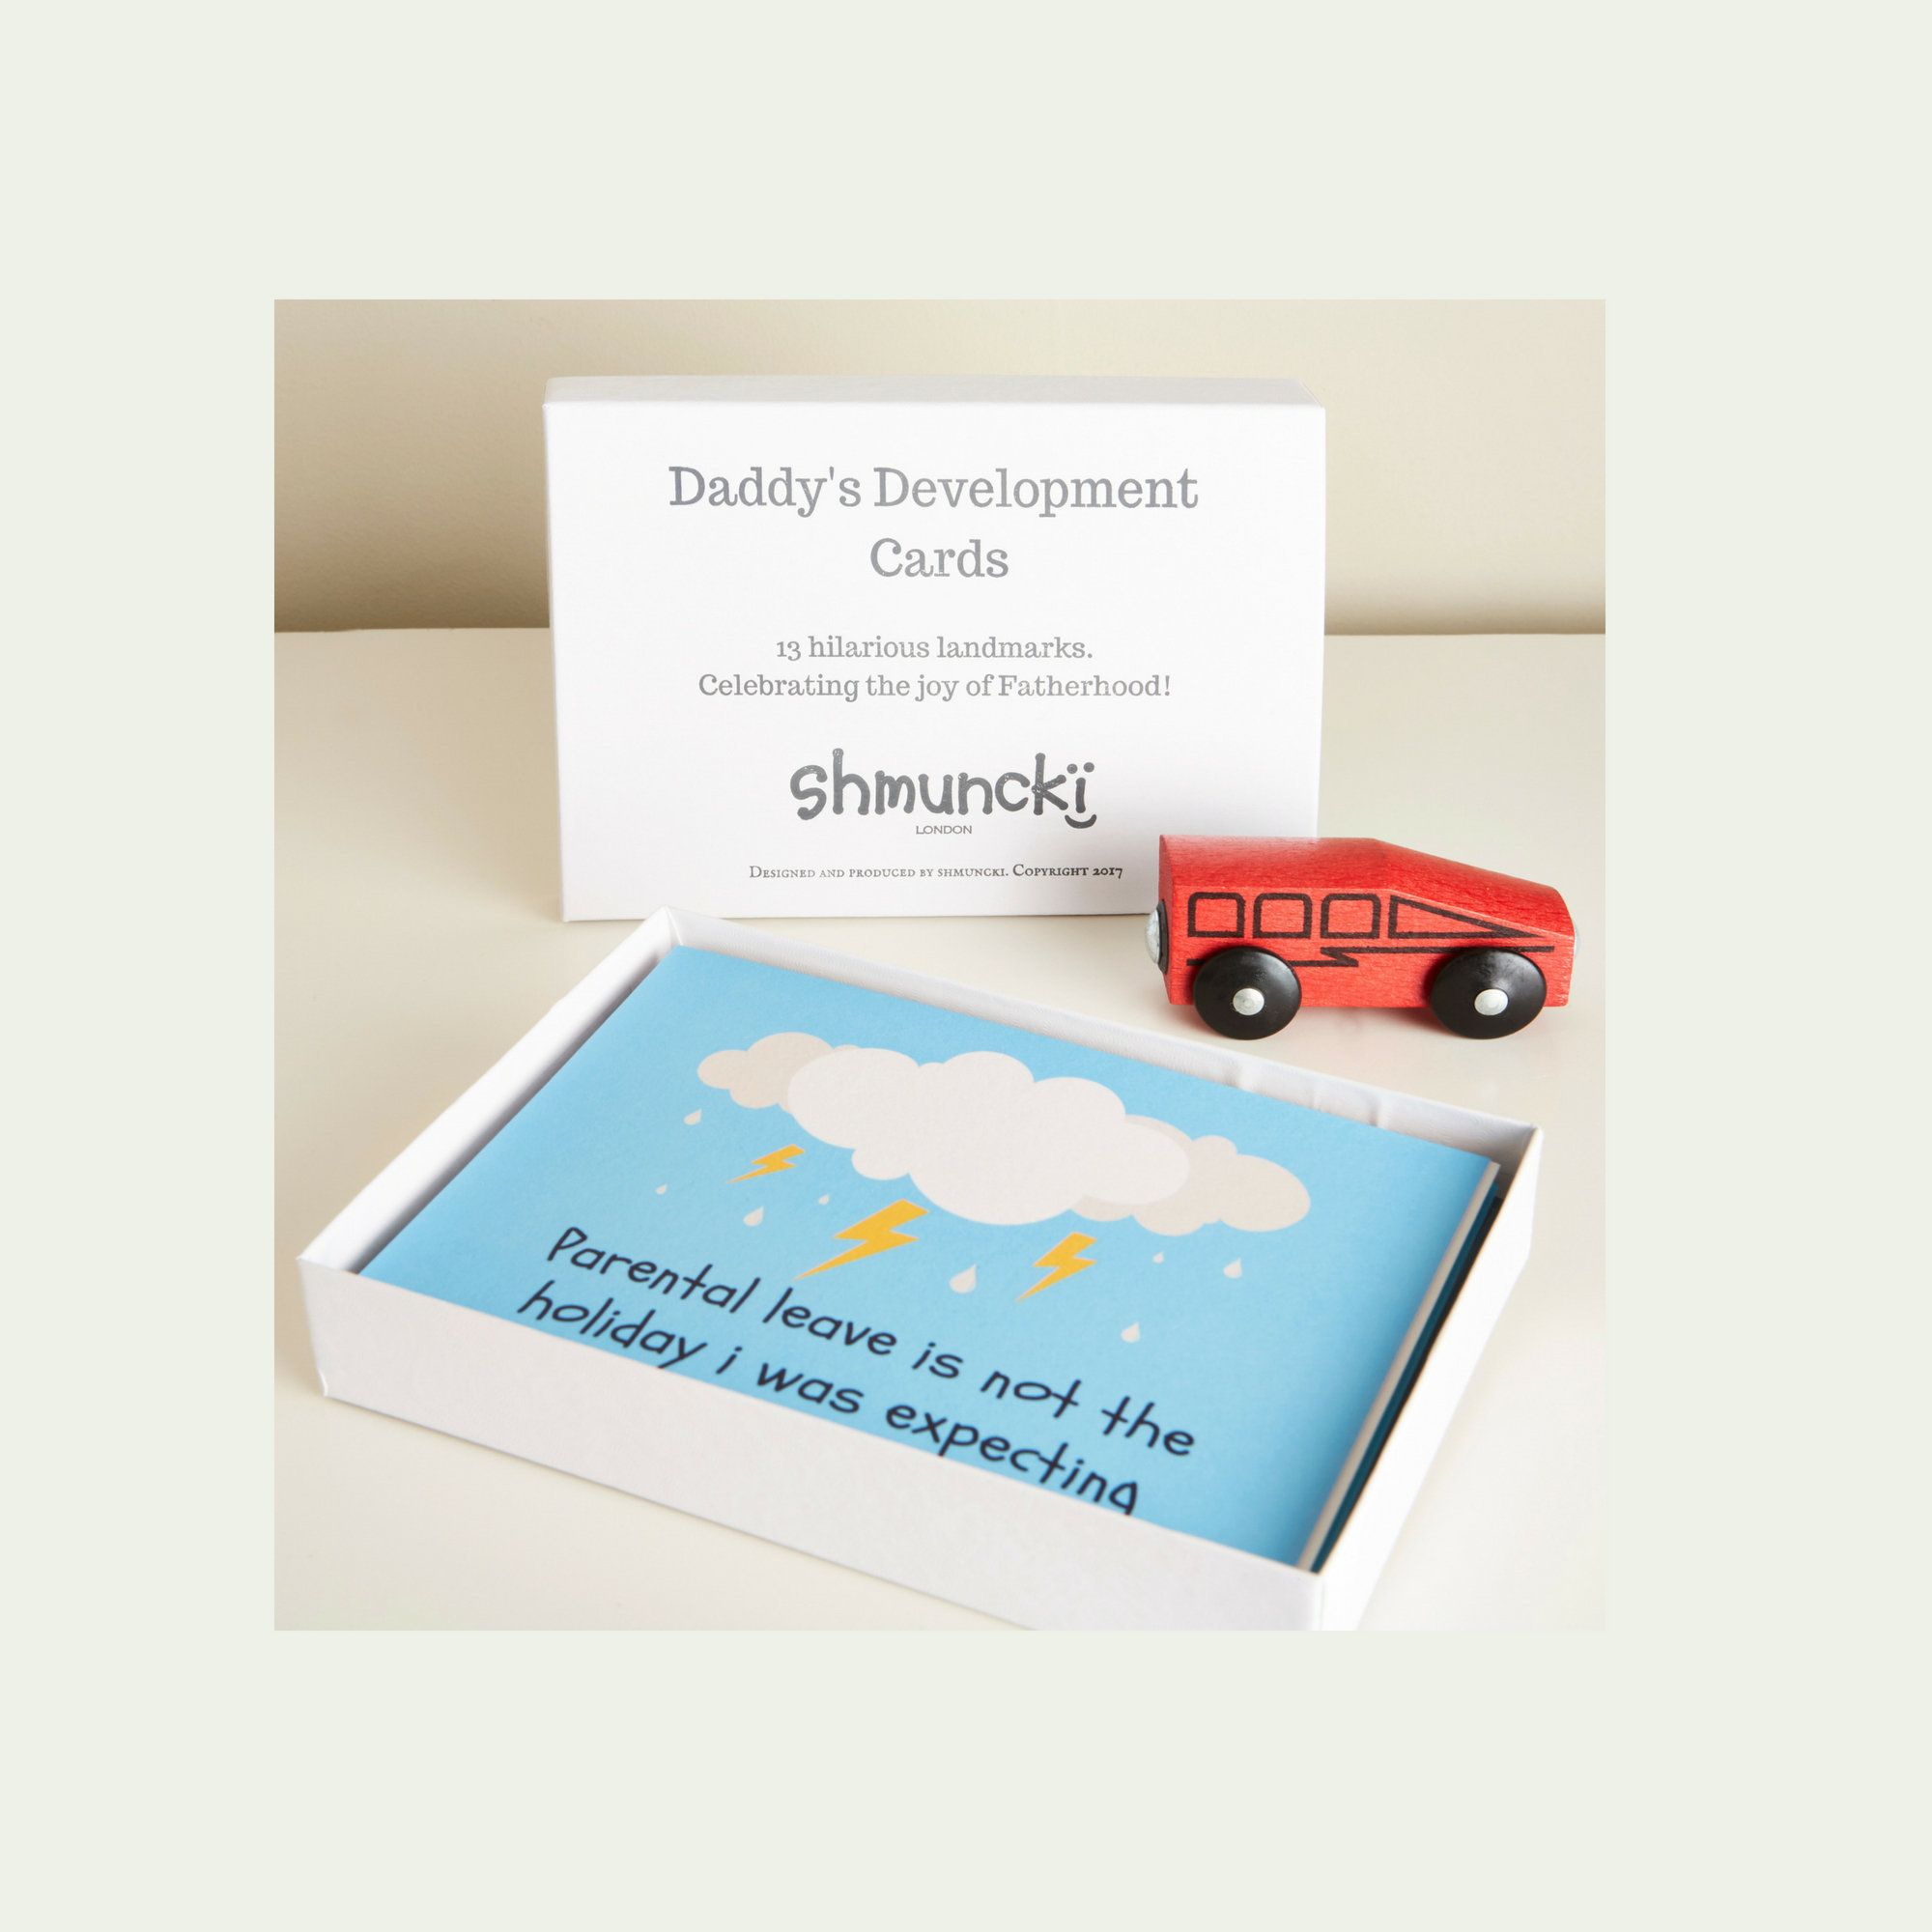 Birthday Gift For Daddy To Be Development Cards New Dad Milestone From Son Daughter Baby Bump Shower